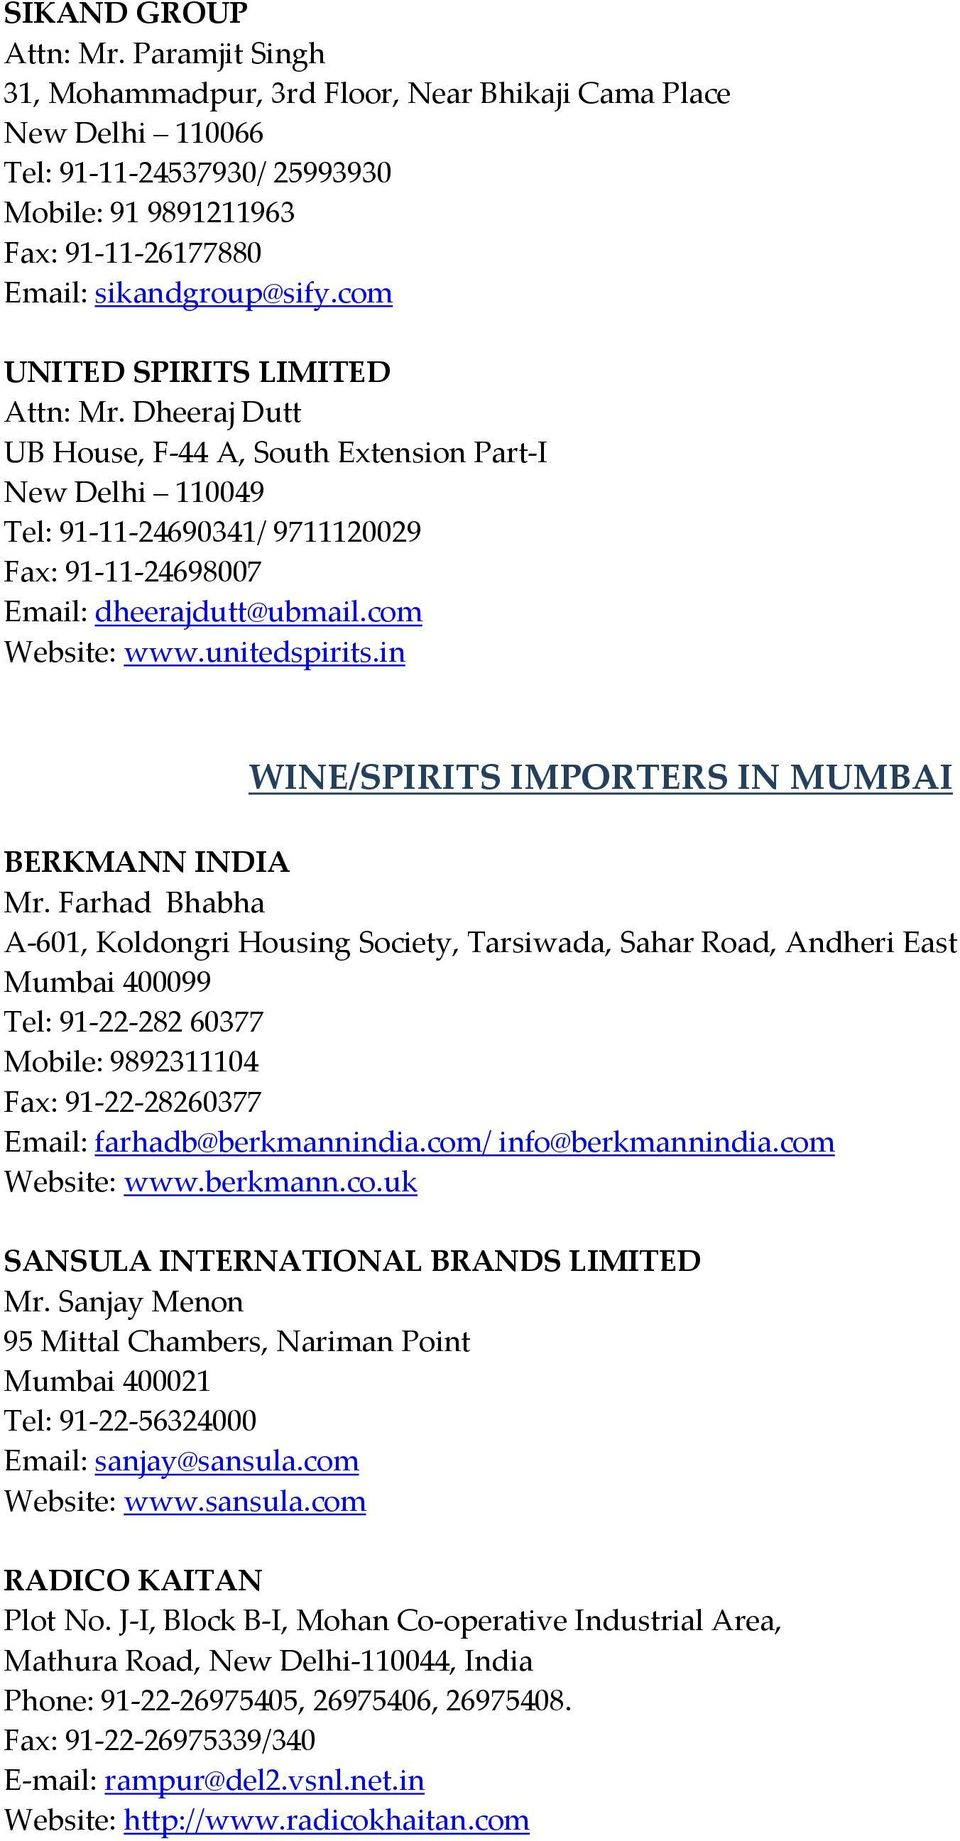 com UNITED SPIRITS LIMITED Attn: Mr. Dheeraj Dutt UB House, F 44 A, South Extension Part I New Delhi 110049 Tel: 91 11 24690341/ 9711120029 Fax: 91 11 24698007 Email: dheerajdutt@ubmail.